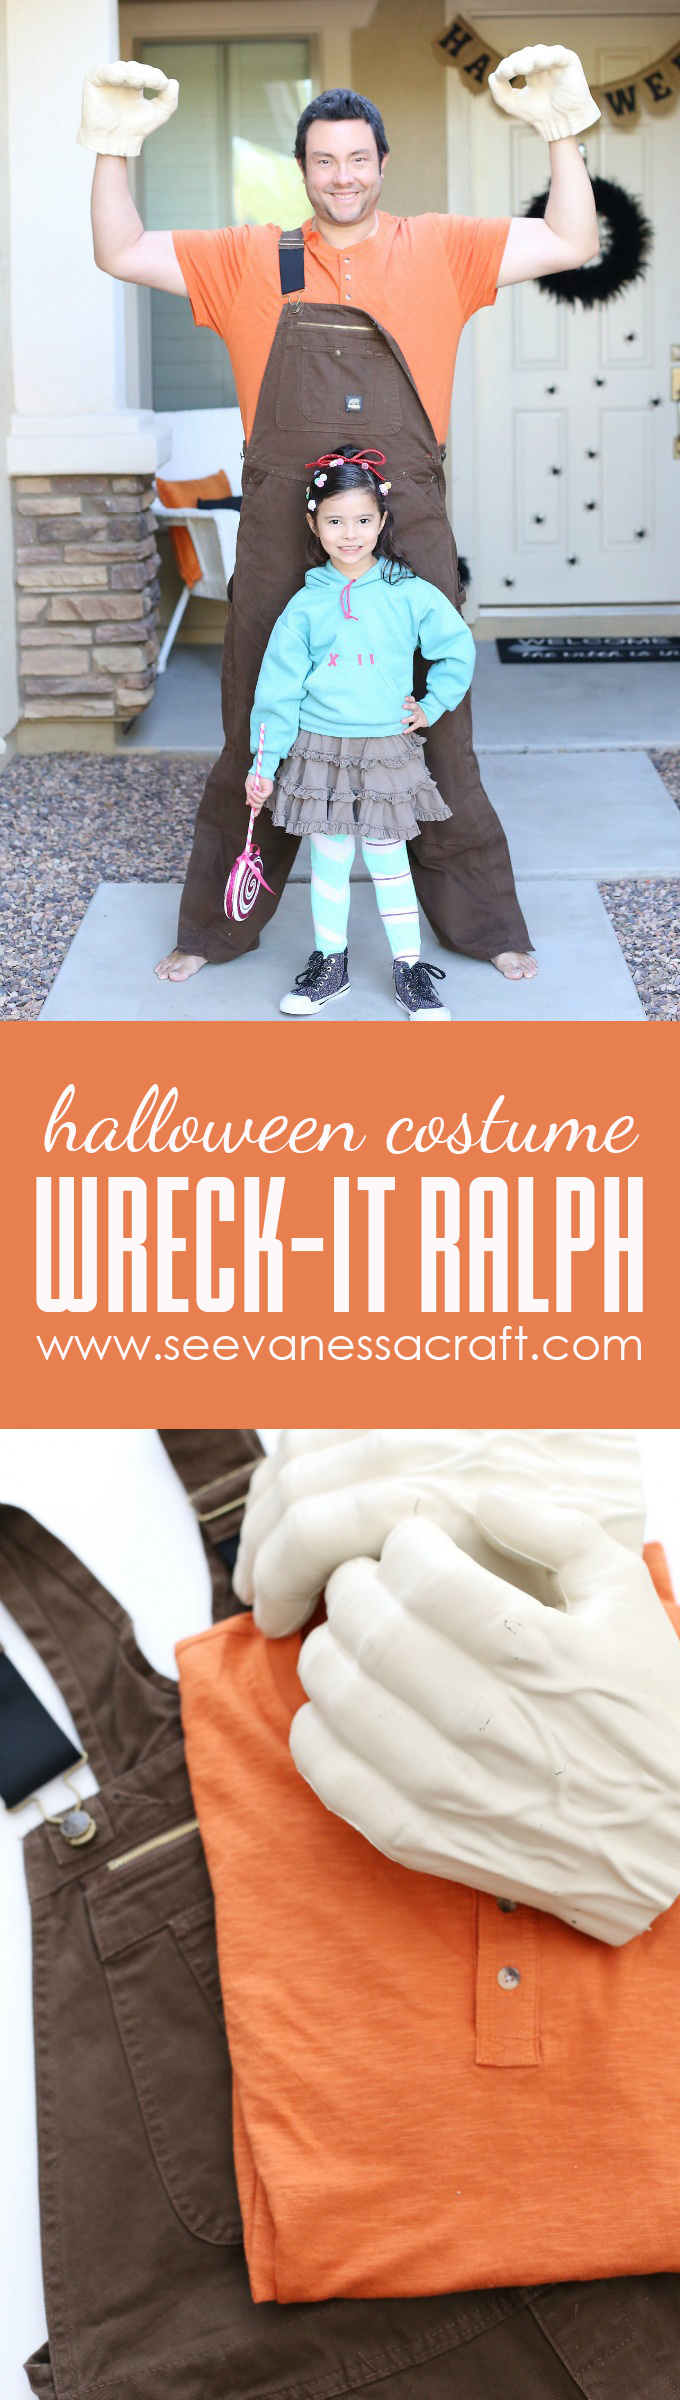 Wreck It Ralph Halloween Costume Tutorial